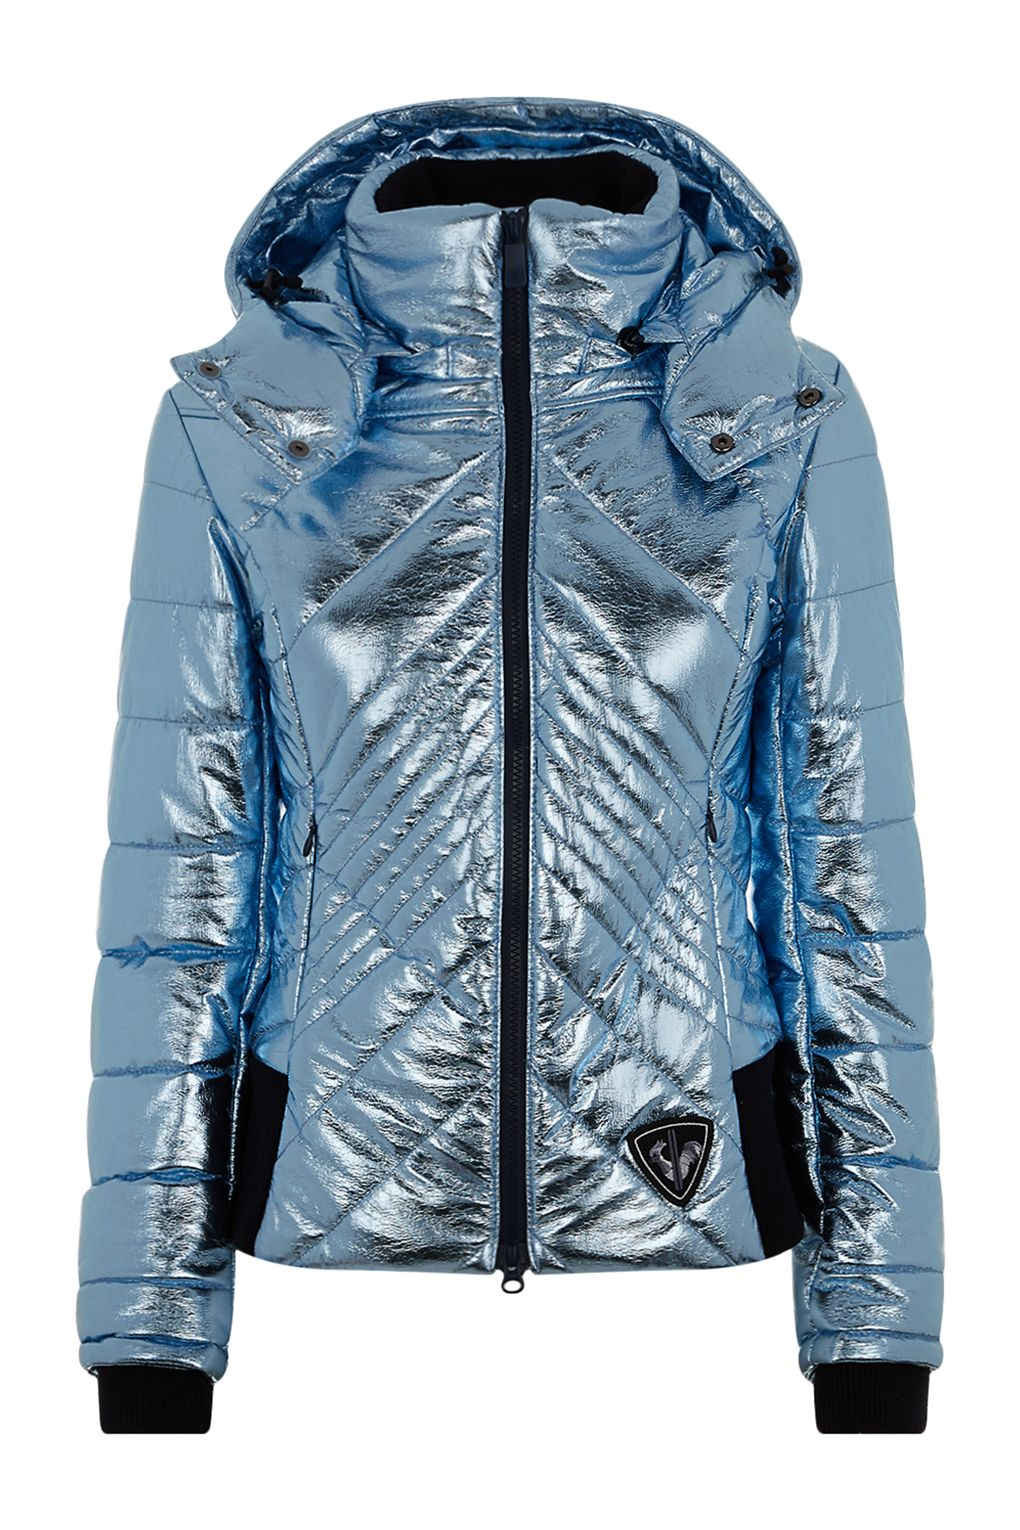 The best ski jackets to wear on the slopes - and in the city: https://t.co/vdndDz4fVn https://t.co/Mqo5maPI1I